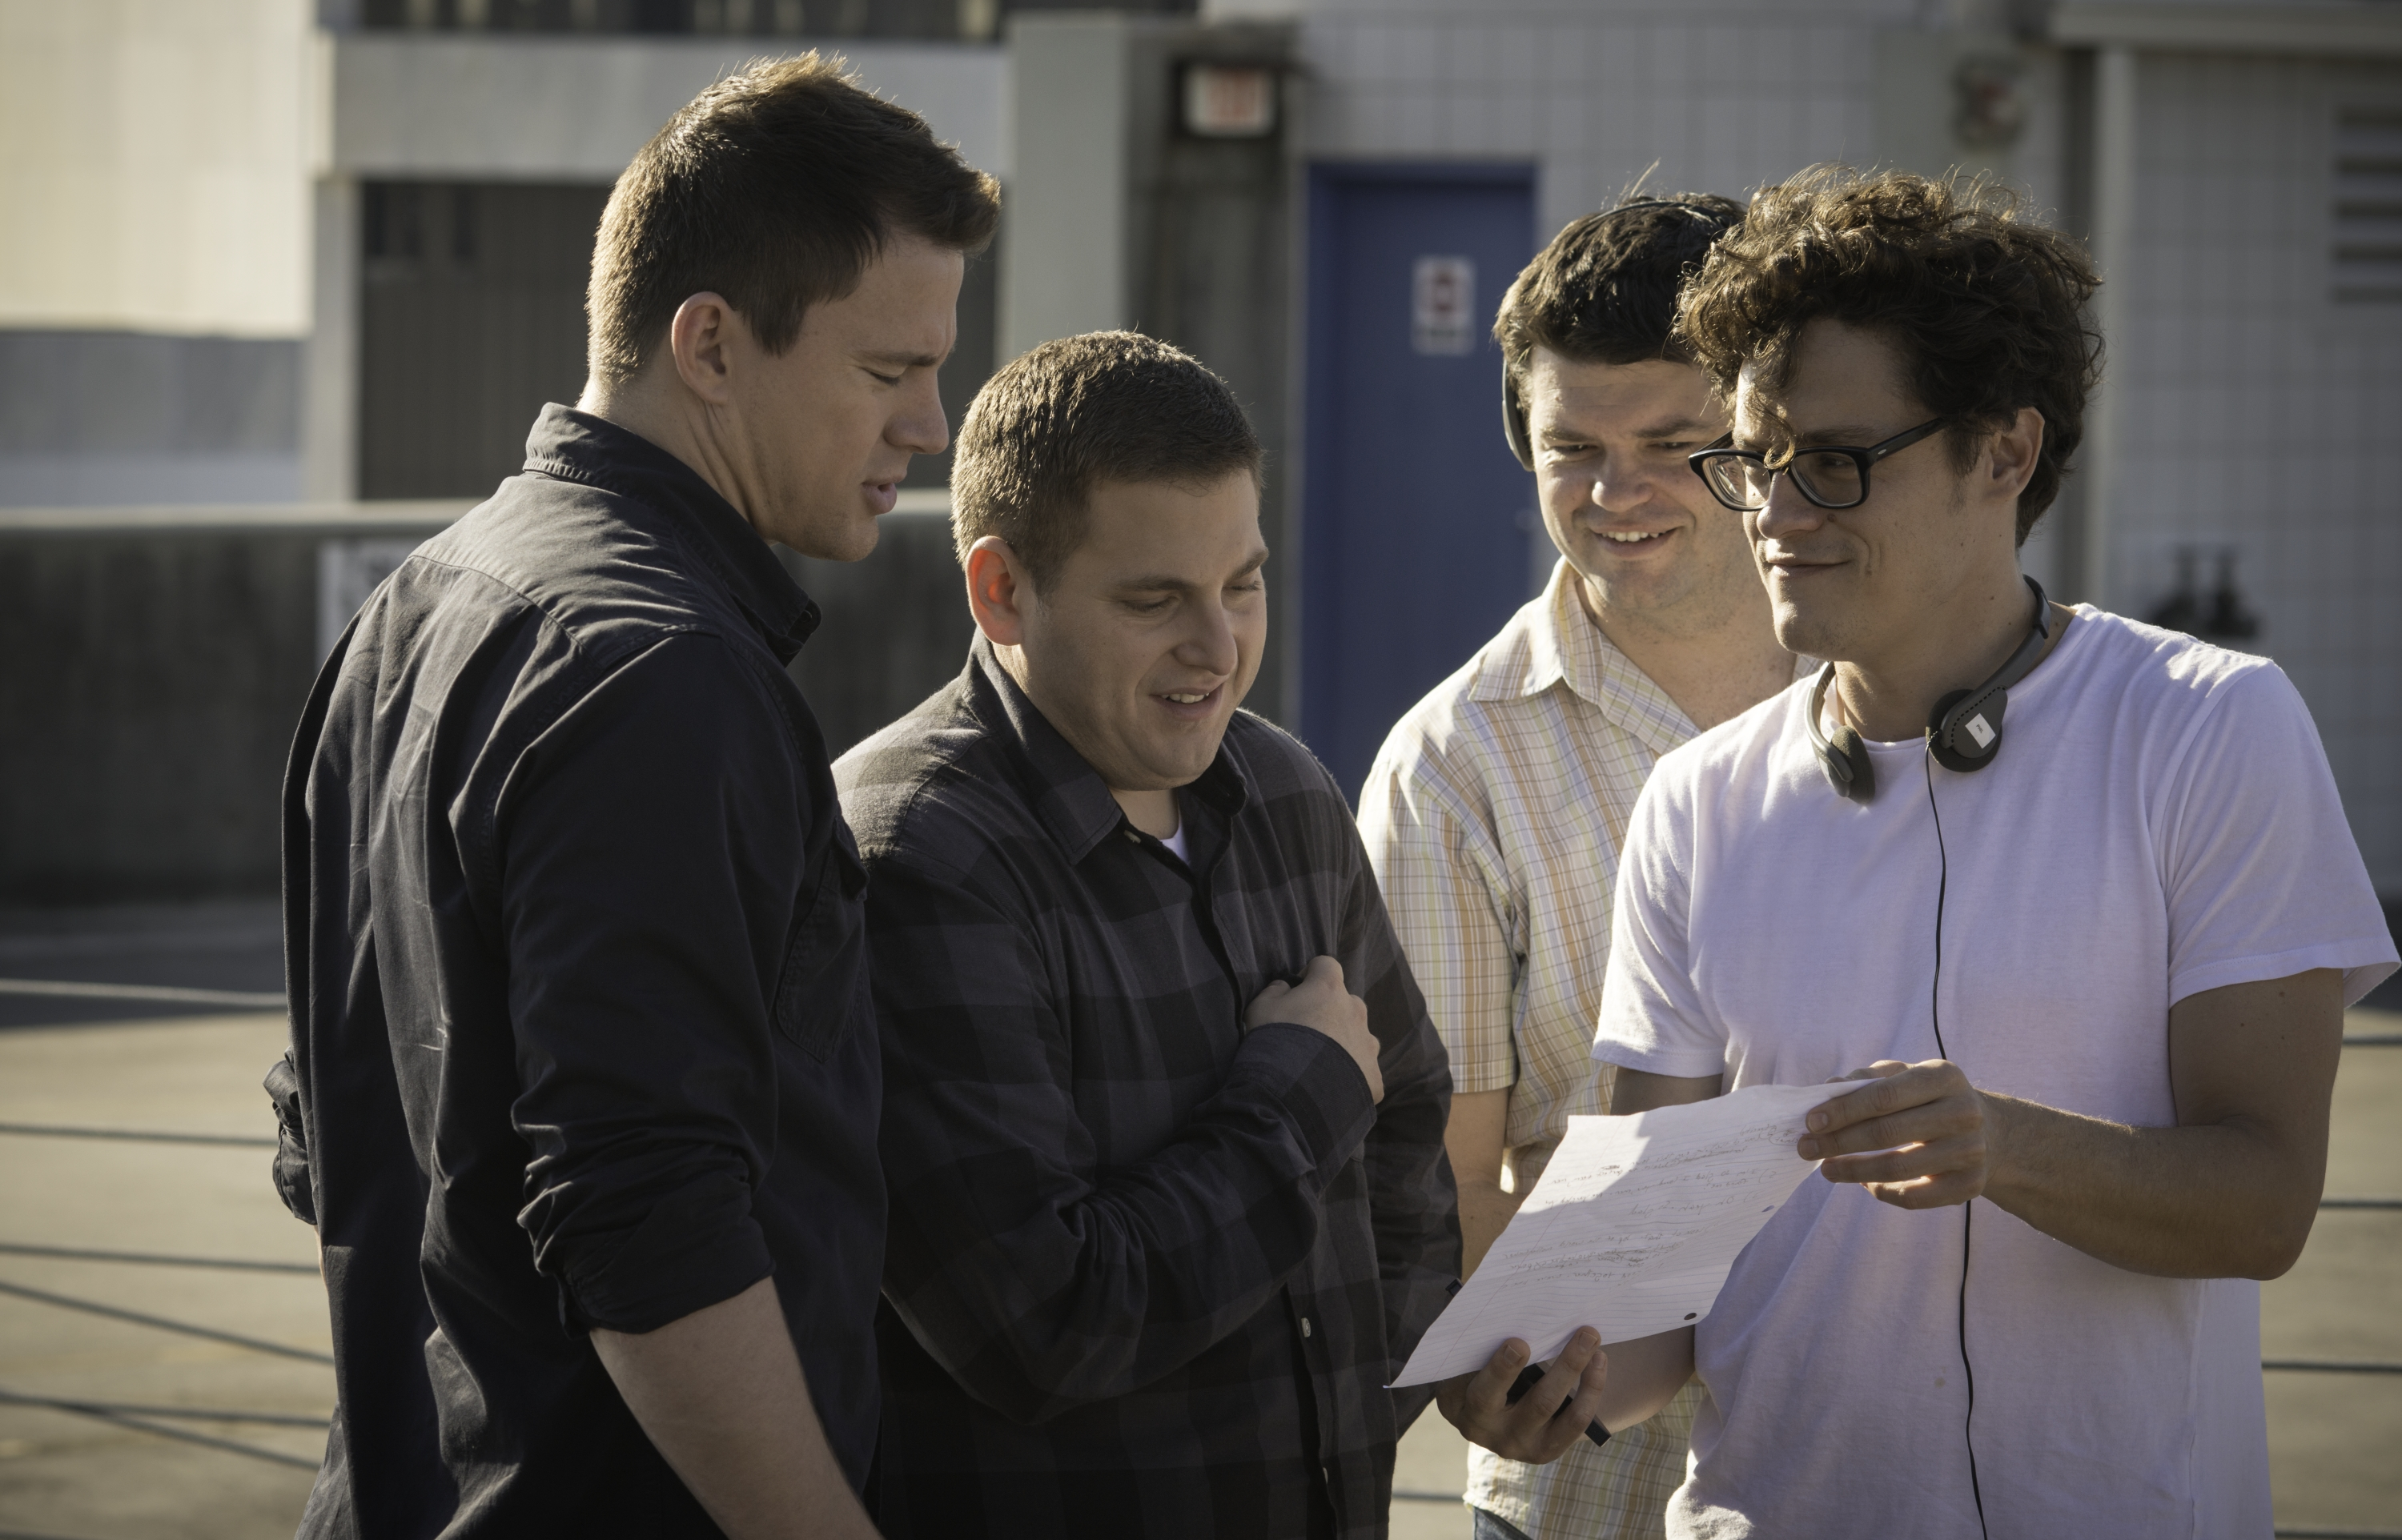 phil lord chris miller channing tatum jonah hill comando especial 2